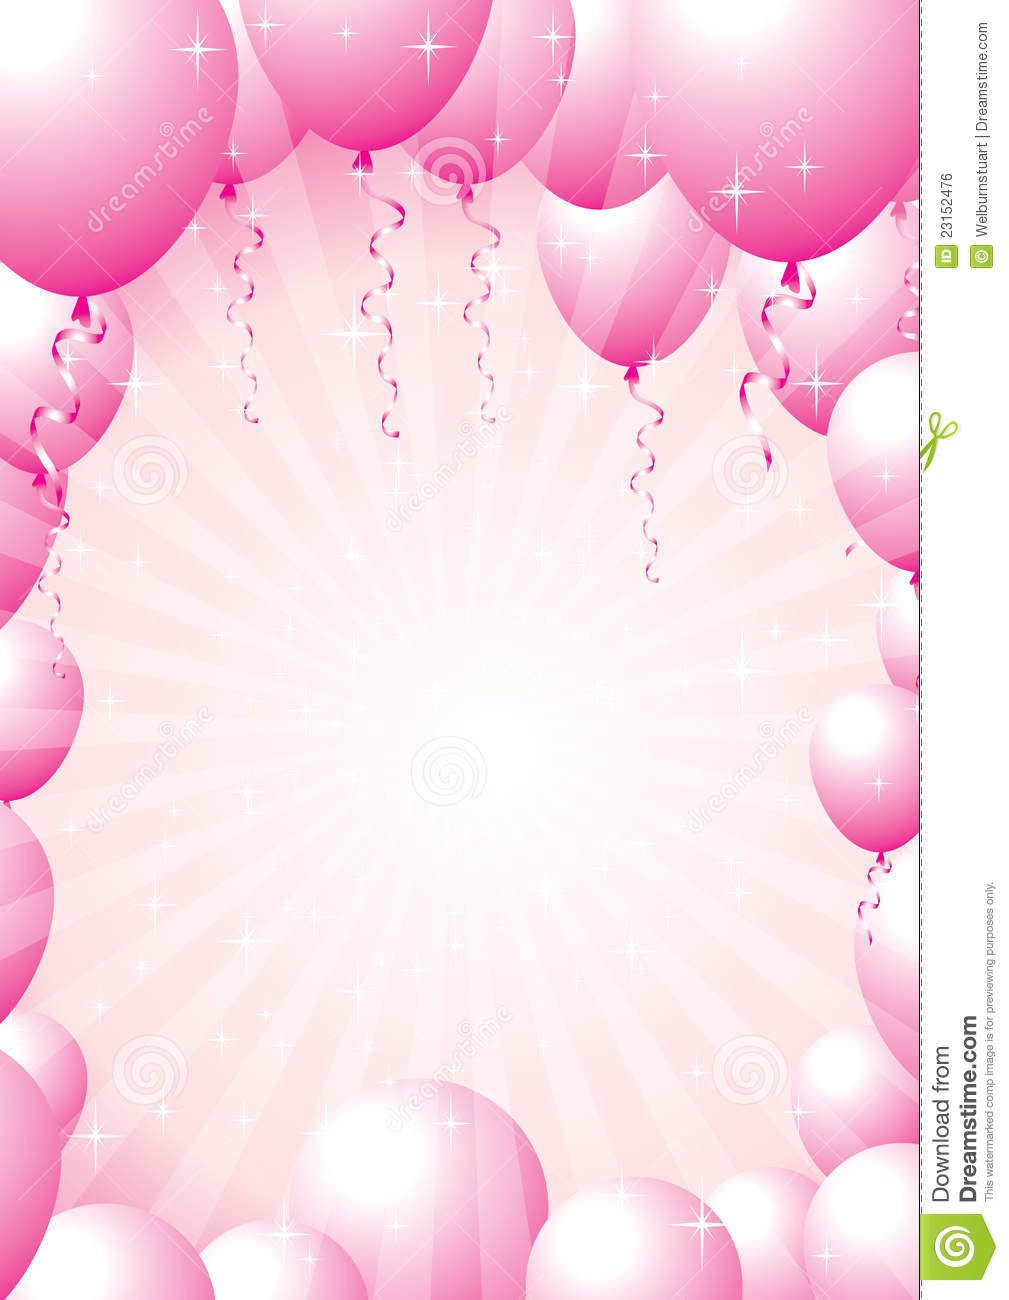 Pink Balloon Border Stock Vector Illustration Of Valentine